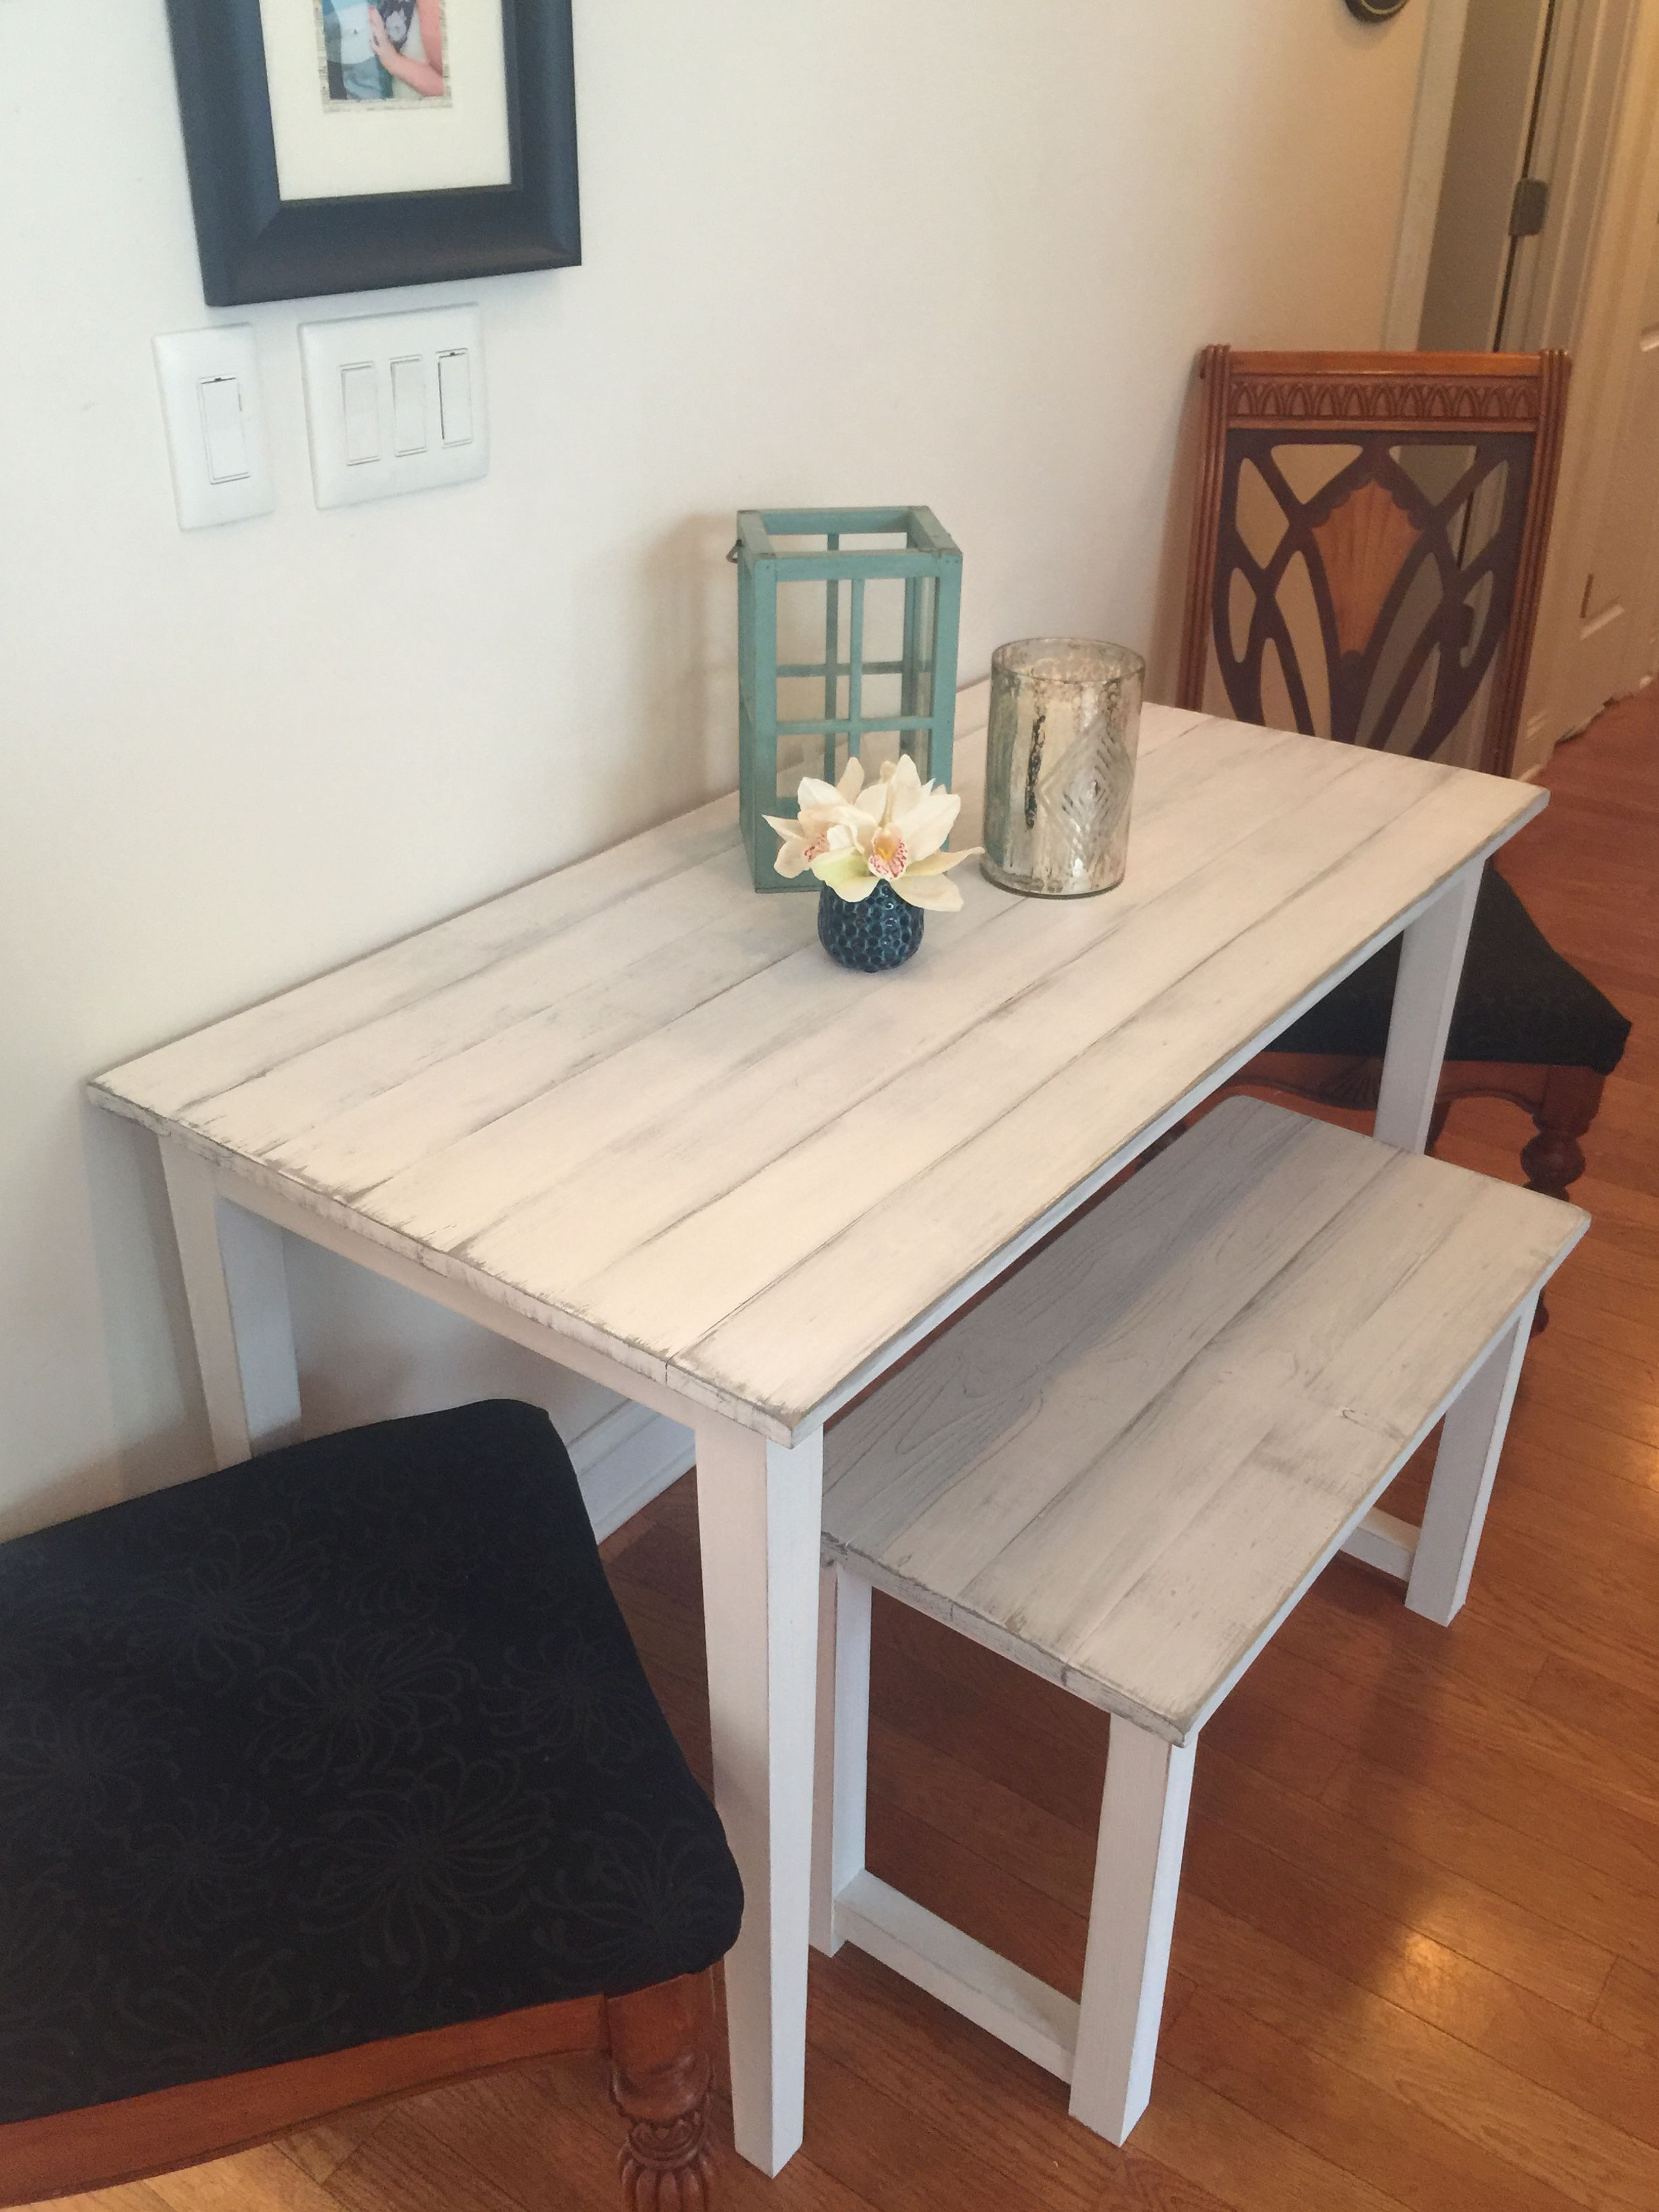 Small Farmhouse Table For Small Room Bench And Distressed White Washed Wood Decorating A Small Sp Small Farmhouse Table Dining Room Small Kitchen Table Bench